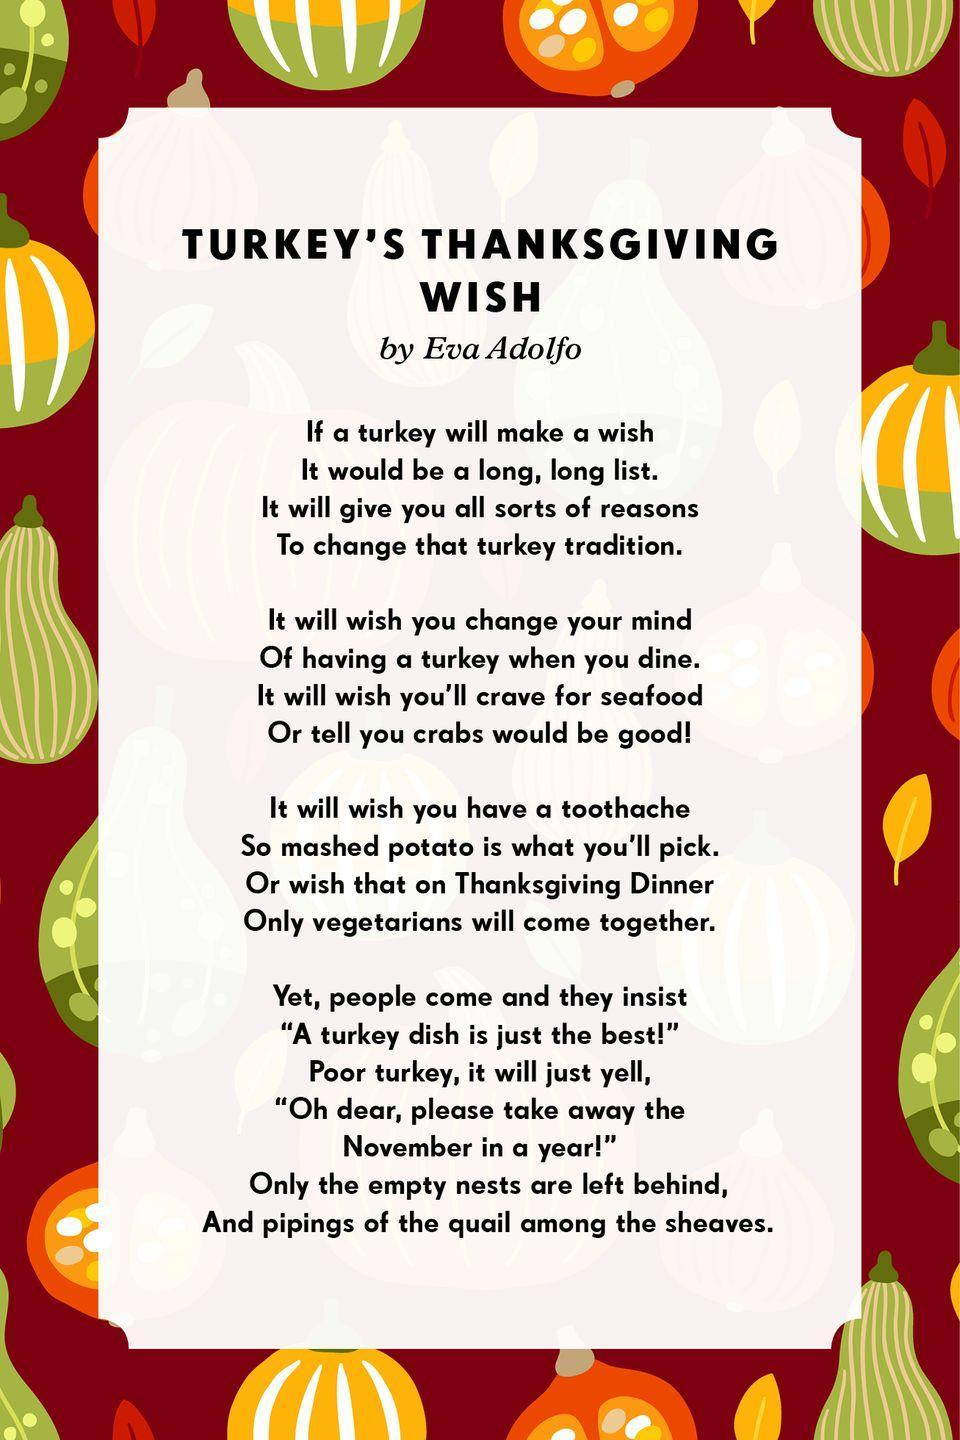 """<p><strong>Turkey's Thanksgiving Wish</strong></p><p>If a turkey will make a wish<br>It would be a long, long list.<br>It will give you all sorts of reasons<br>To change that turkey tradition.<br><br>It will wish you change your mind<br>Of having a turkey when you dine.<br>It will wish you'll crave for seafood<br>Or tell you crabs would be good!<br><br>It will wish you have a toothache<br>So mashed potato is what you'll pick.<br>Or wish that on Thanksgiving Dinner<br>Only vegetarians will come together.<br><br>Yet, people come and they insist<br>""""A turkey dish is just the best!""""<br>Poor turkey, it will just yell,<br>""""Oh dear, please take away the<br>November in a year!<br></p>"""